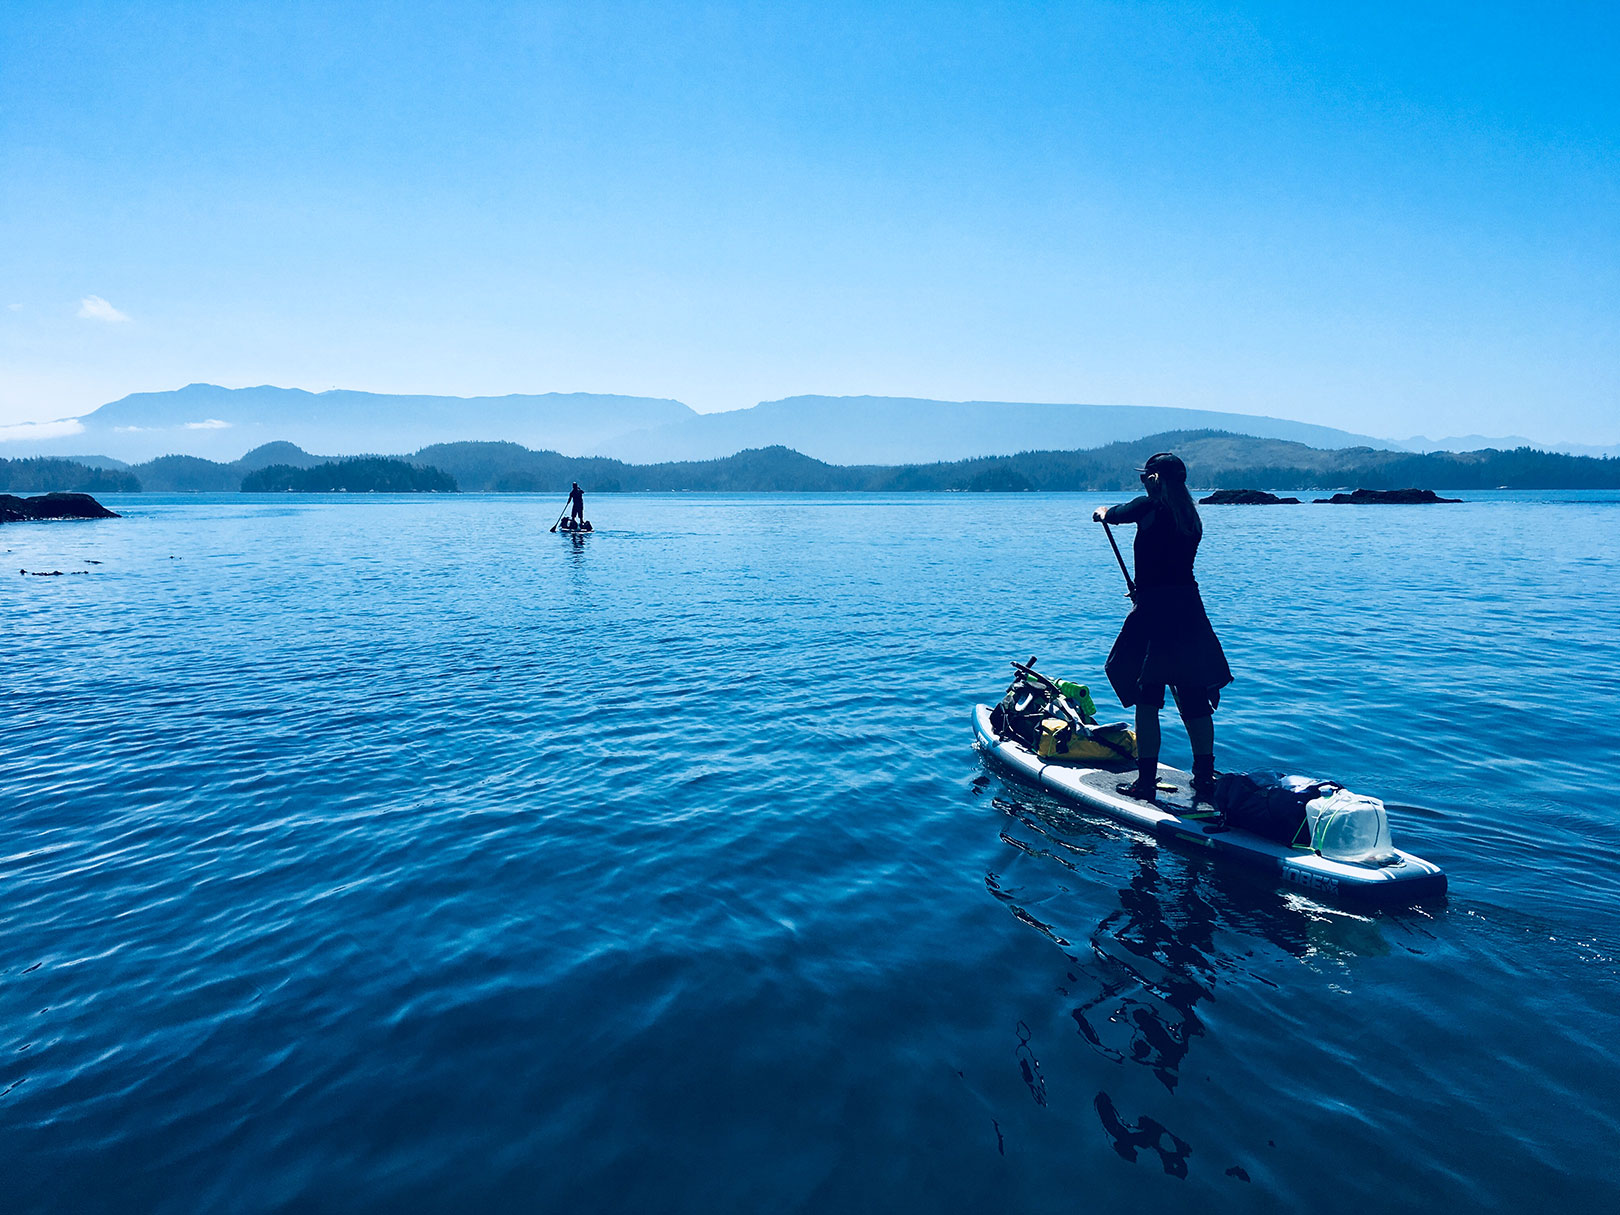 A story of an adventure to the remote Broughton Archipelago